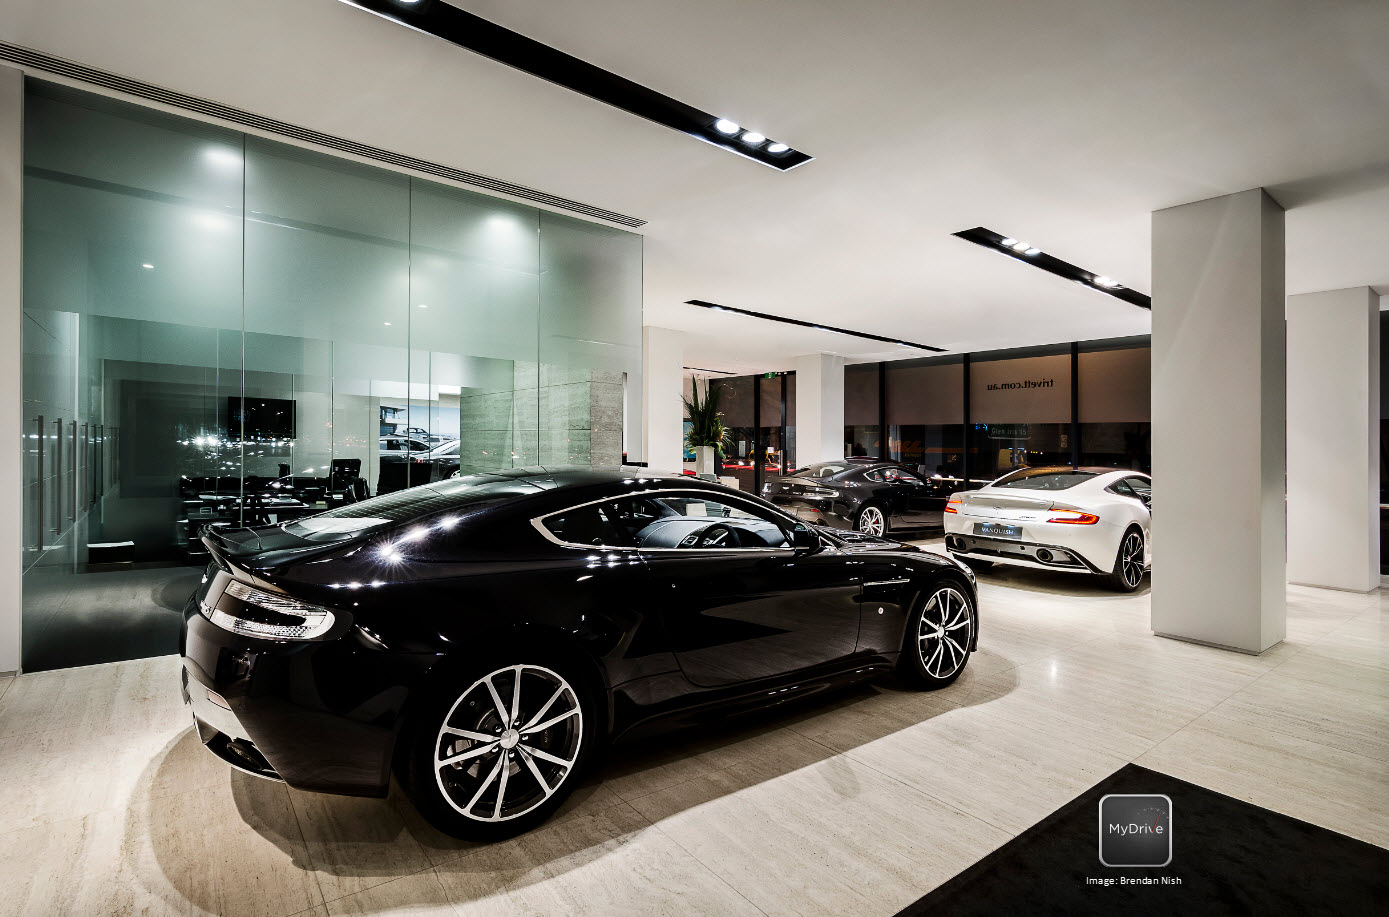 MyDrive Aston Martin Dealership Shoot MyDrive Media - Aston martin dealerships